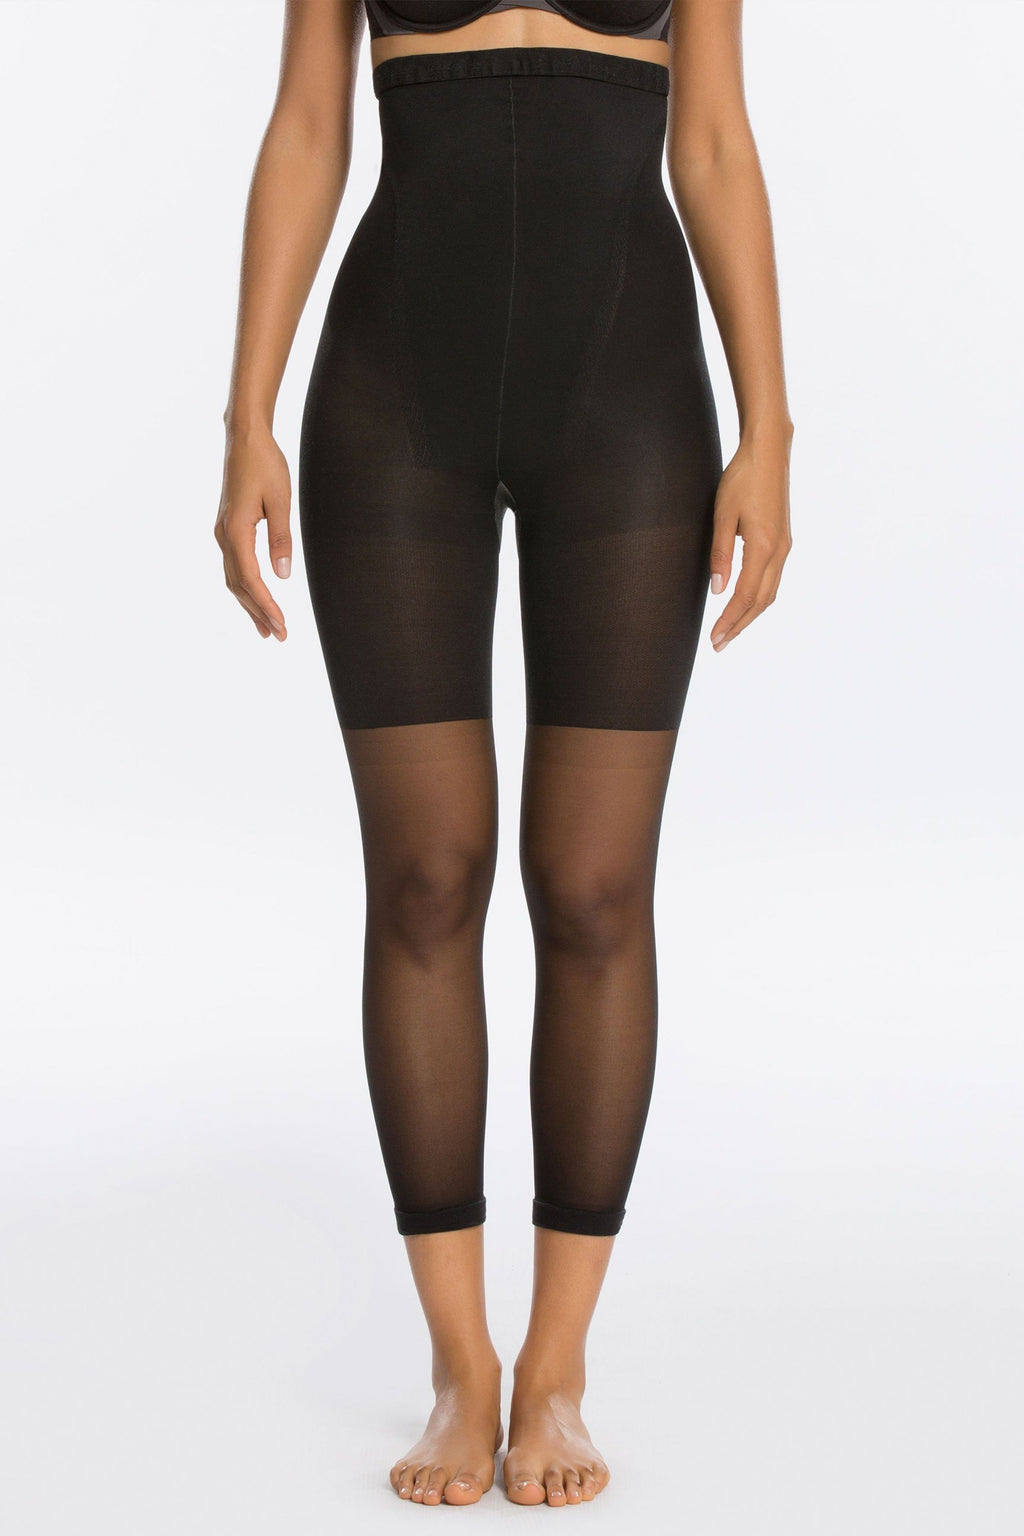 Celebrity Secret High Waist Capri Shapewear For Pants in Black - MY SEXY STYLES